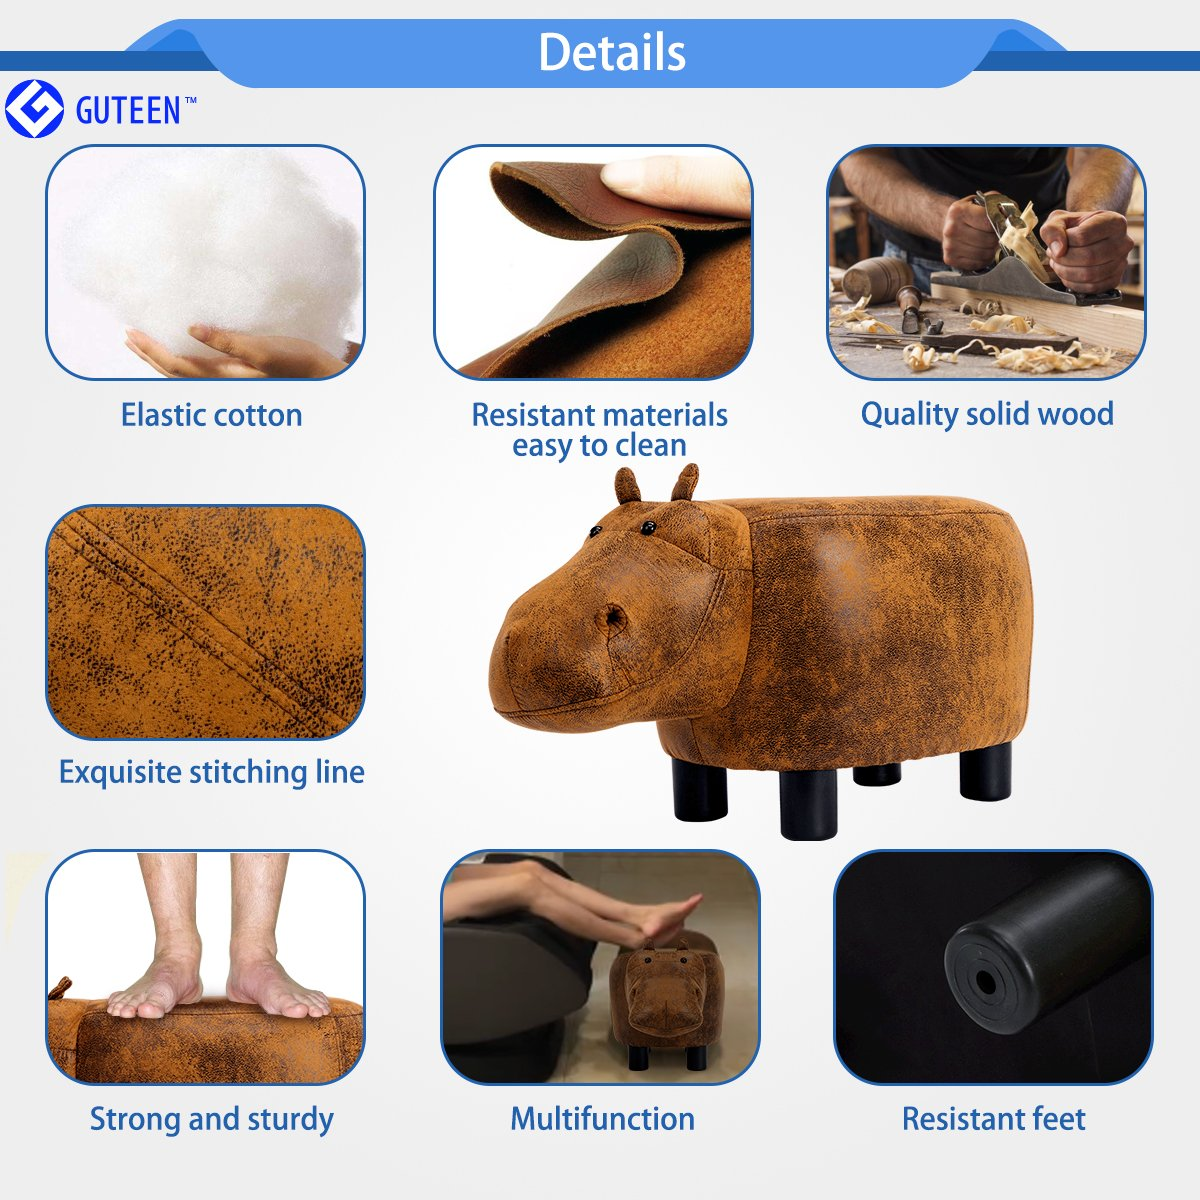 Guteen Upholstered Ride-on Toy Seat Ottoman Footrest Stool with Vivid Adorable Animal-Like Features(Brown Hippo) by GUTEEN (Image #3)